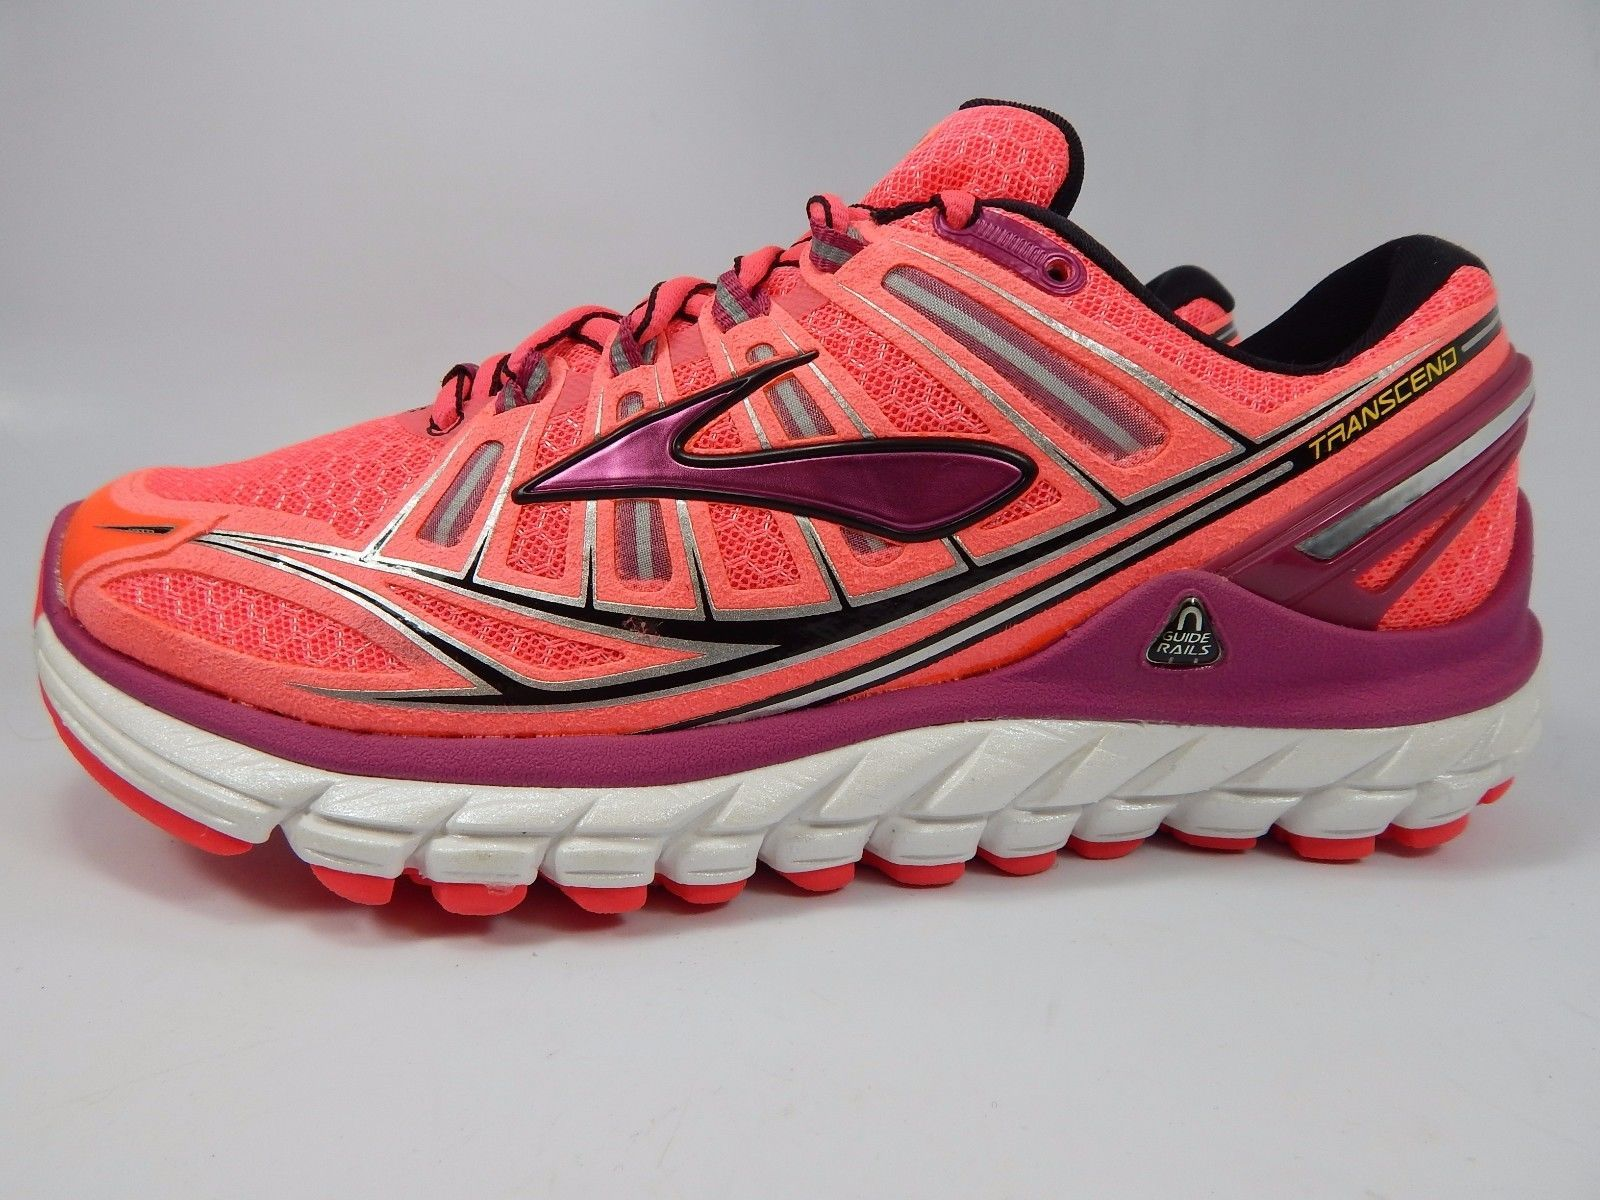 Brooks Transcend Women's Running Shoes Size US 6 M (B) EU 36.5 Pink 1201501B878